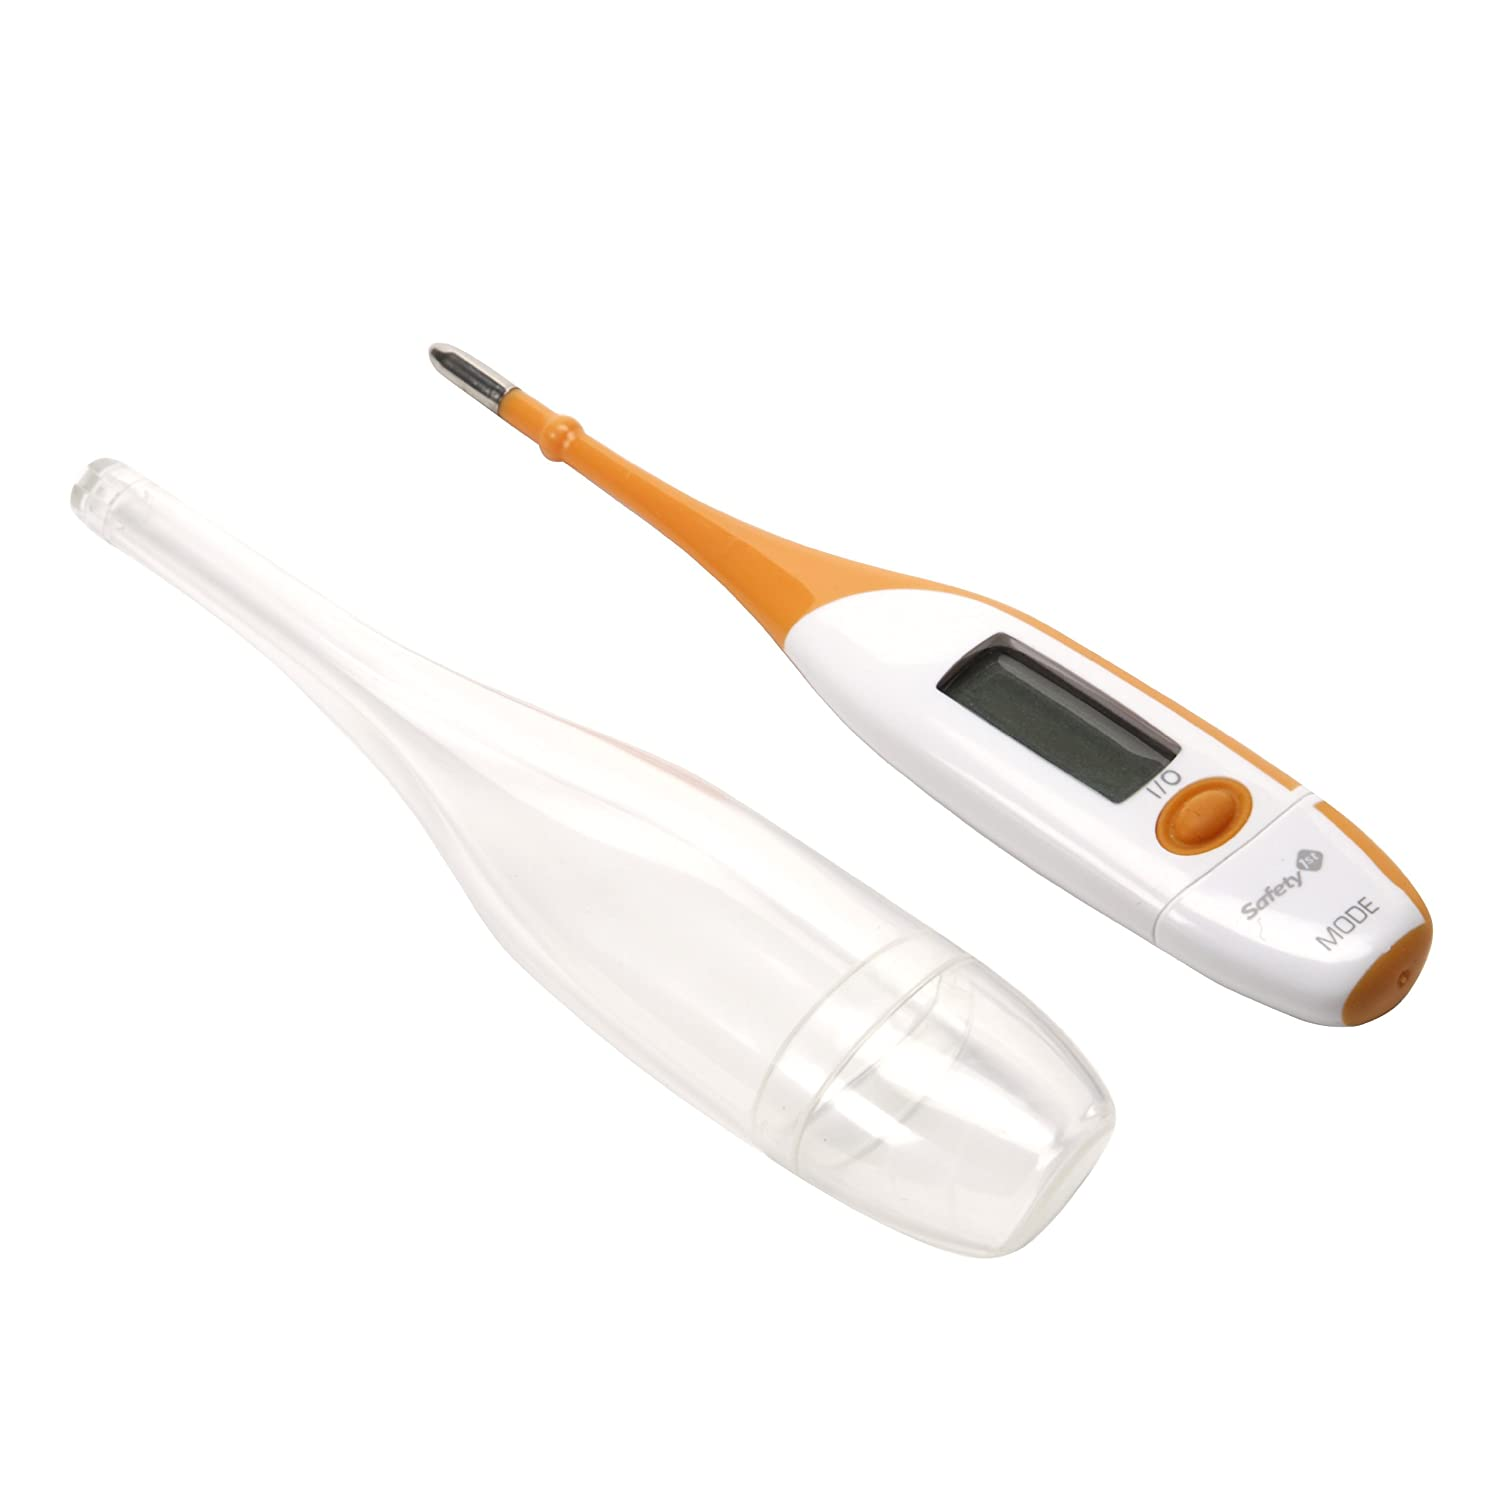 Safety 1st 4-in-1 High Speed Digital Thermometer Dorel Juvenile Canada 49665